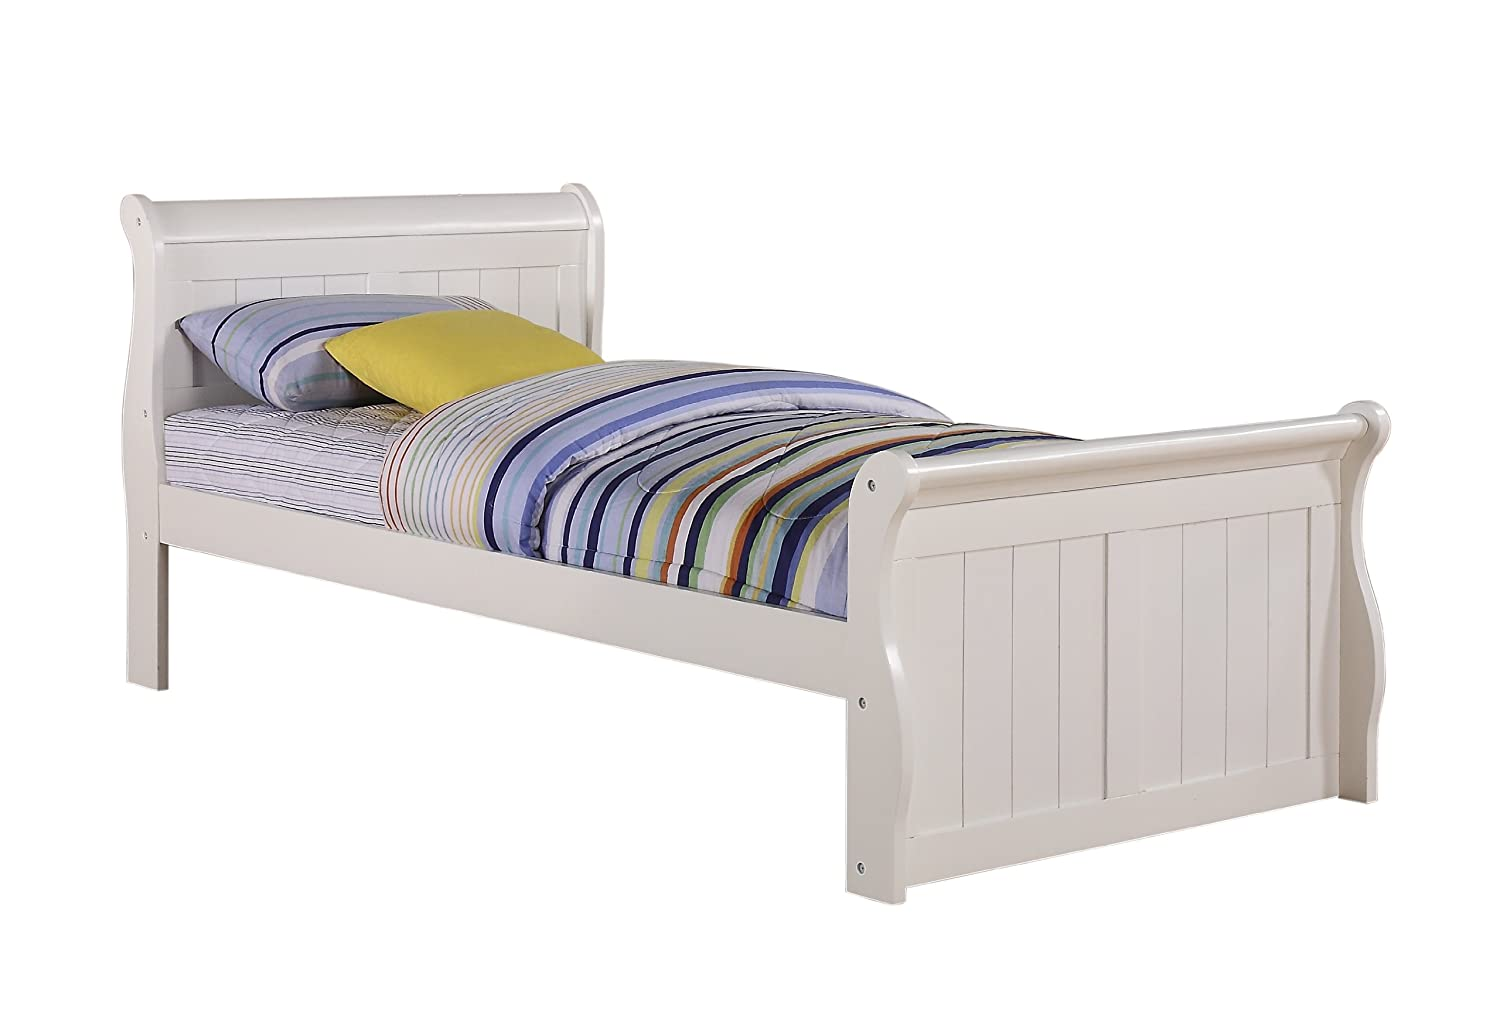 - Amazon.com: Twin White Sleigh Bed By Donco: Kitchen & Dining